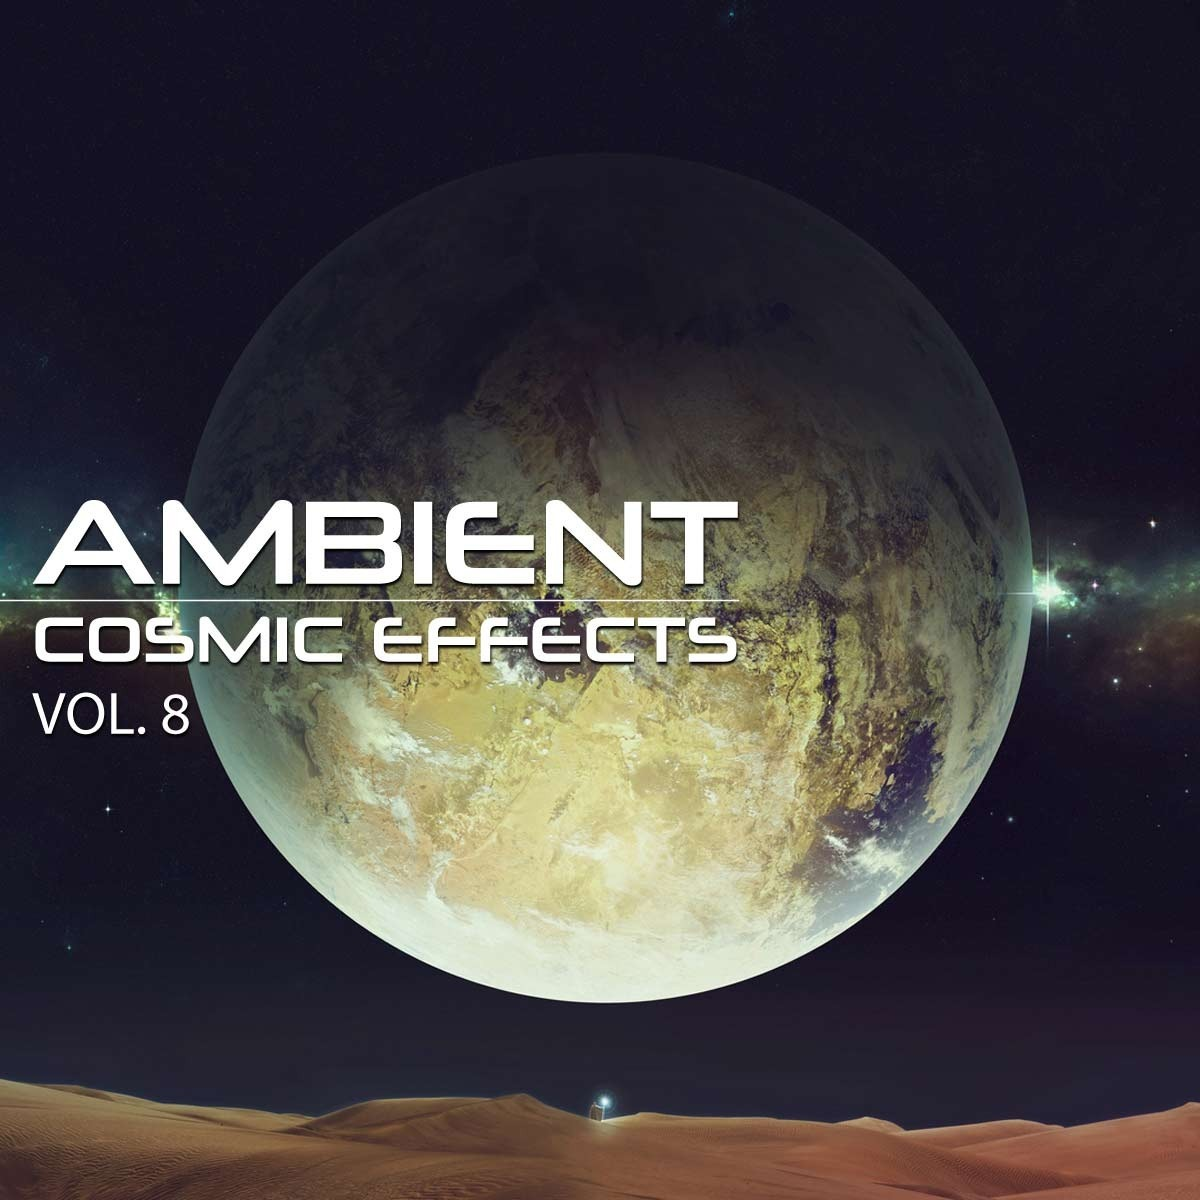 Ambient Cosmic Effects Vol 8